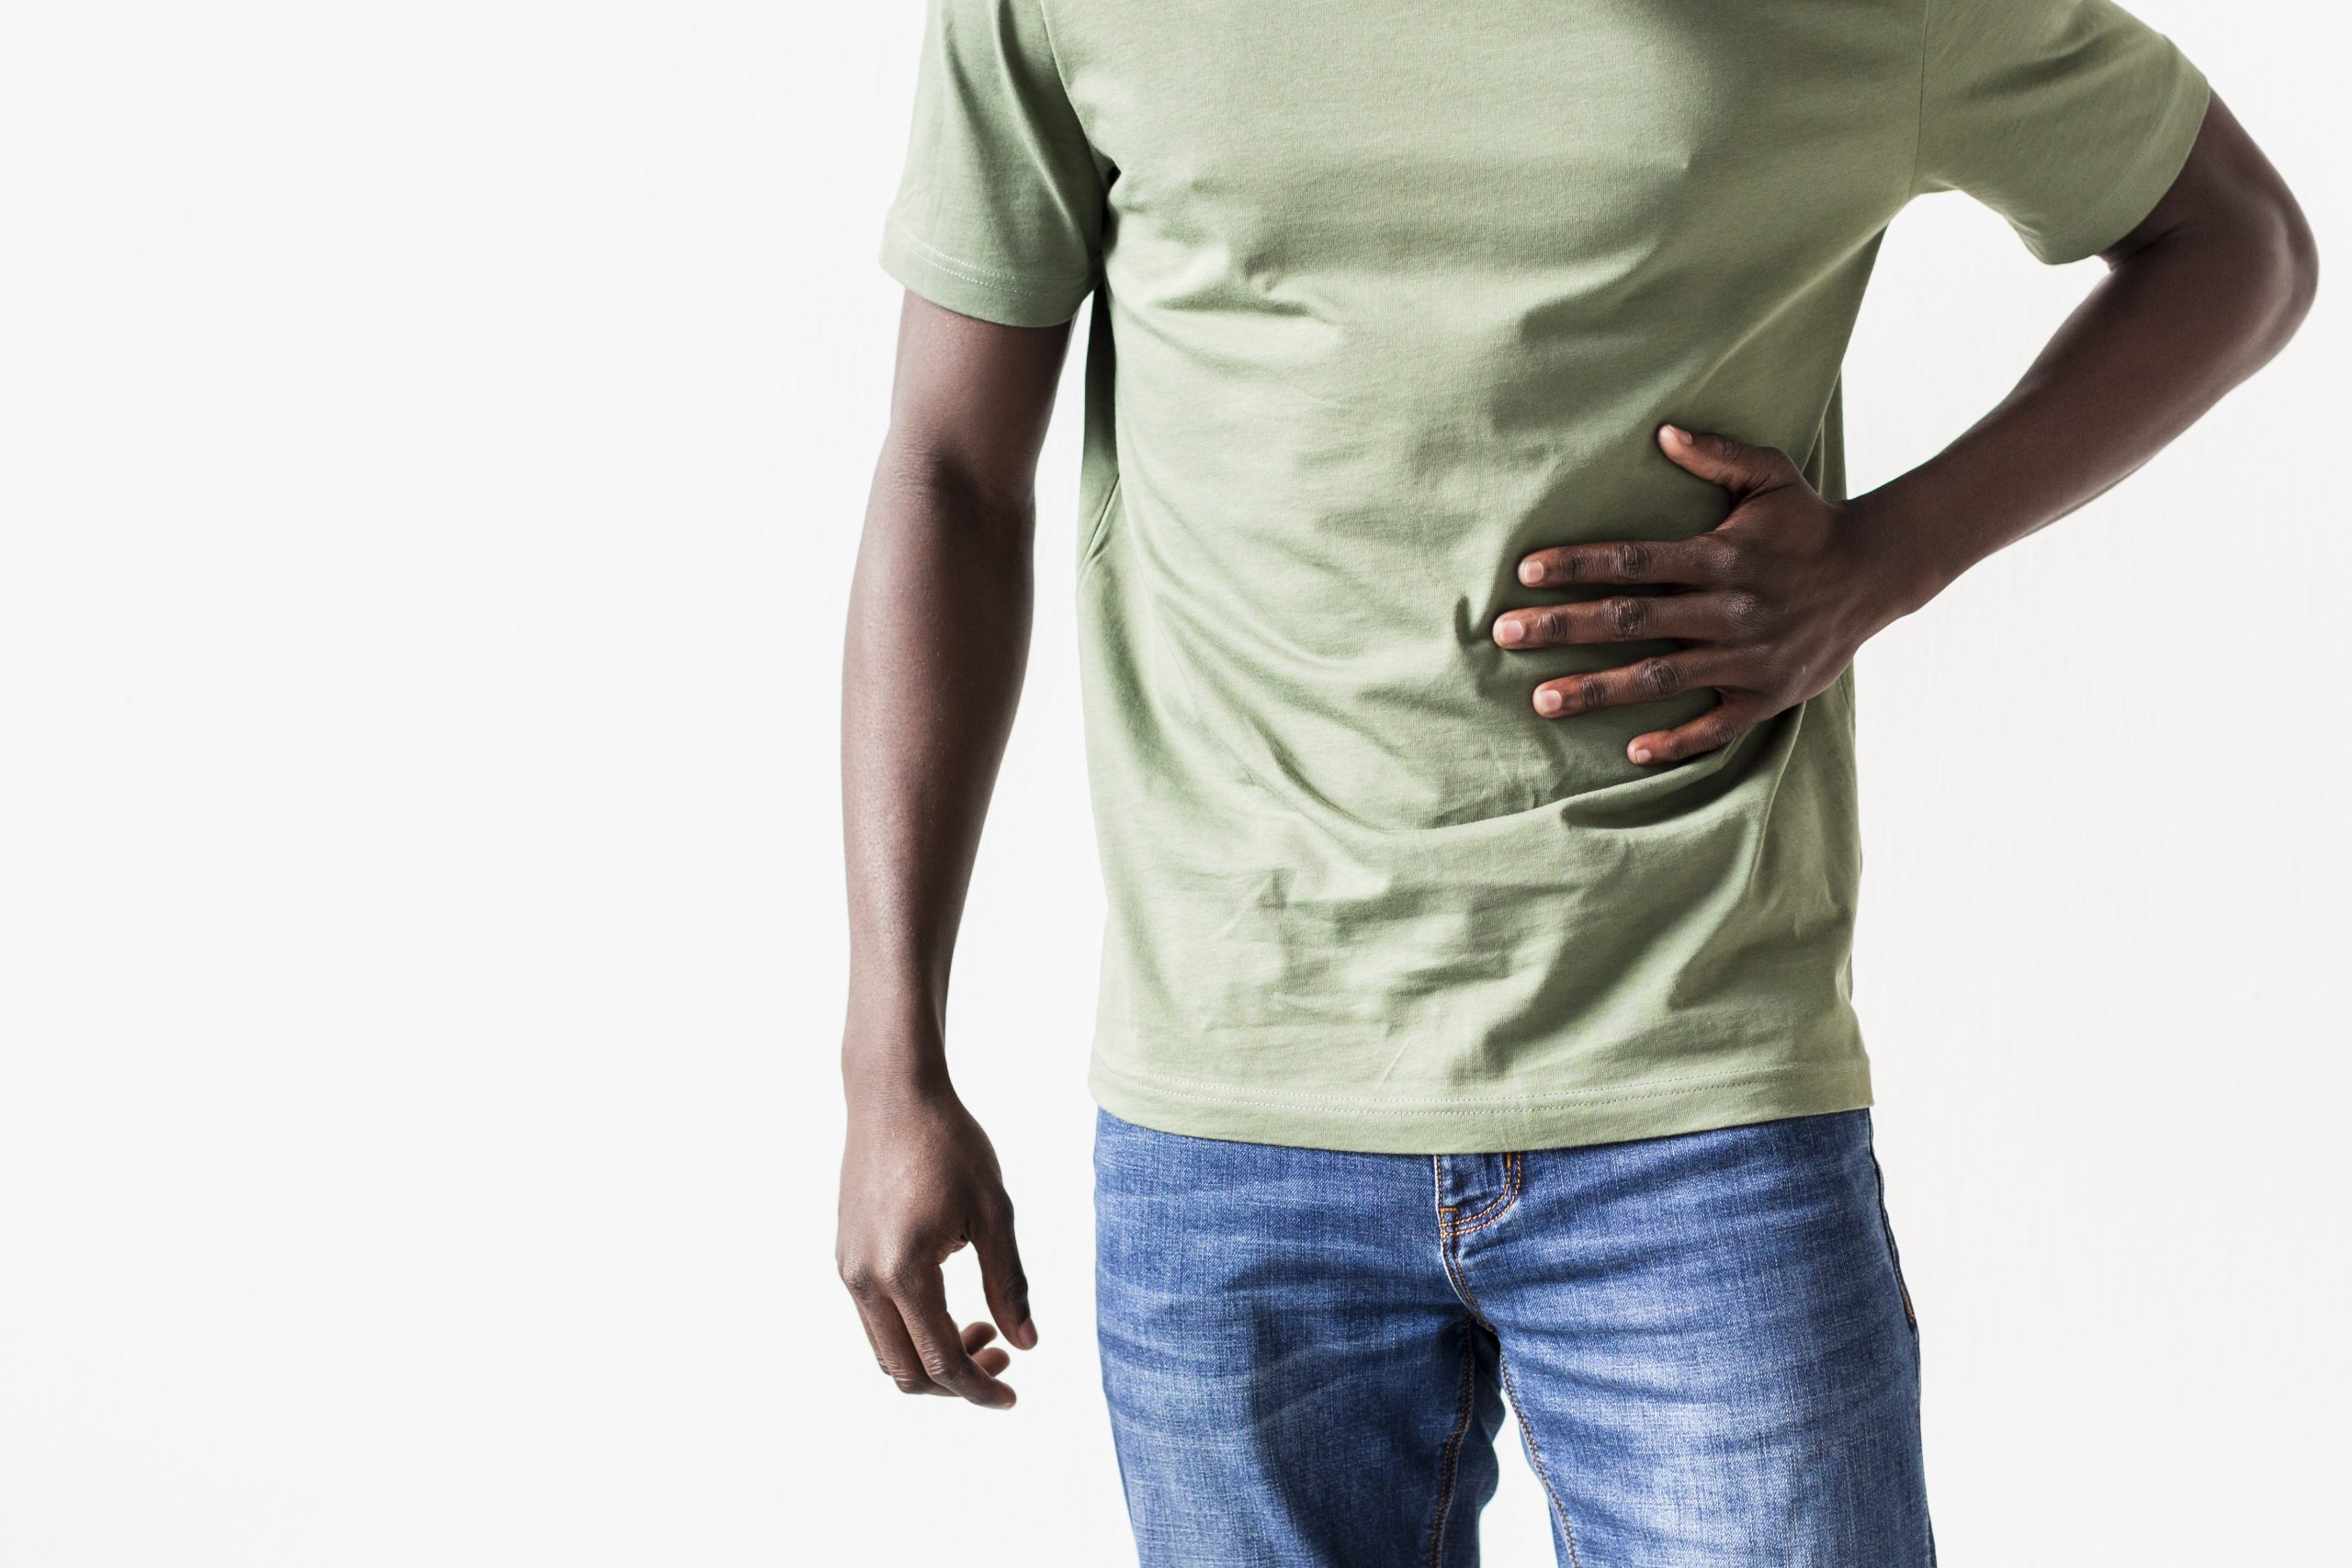 When should i worry about hernia pain?